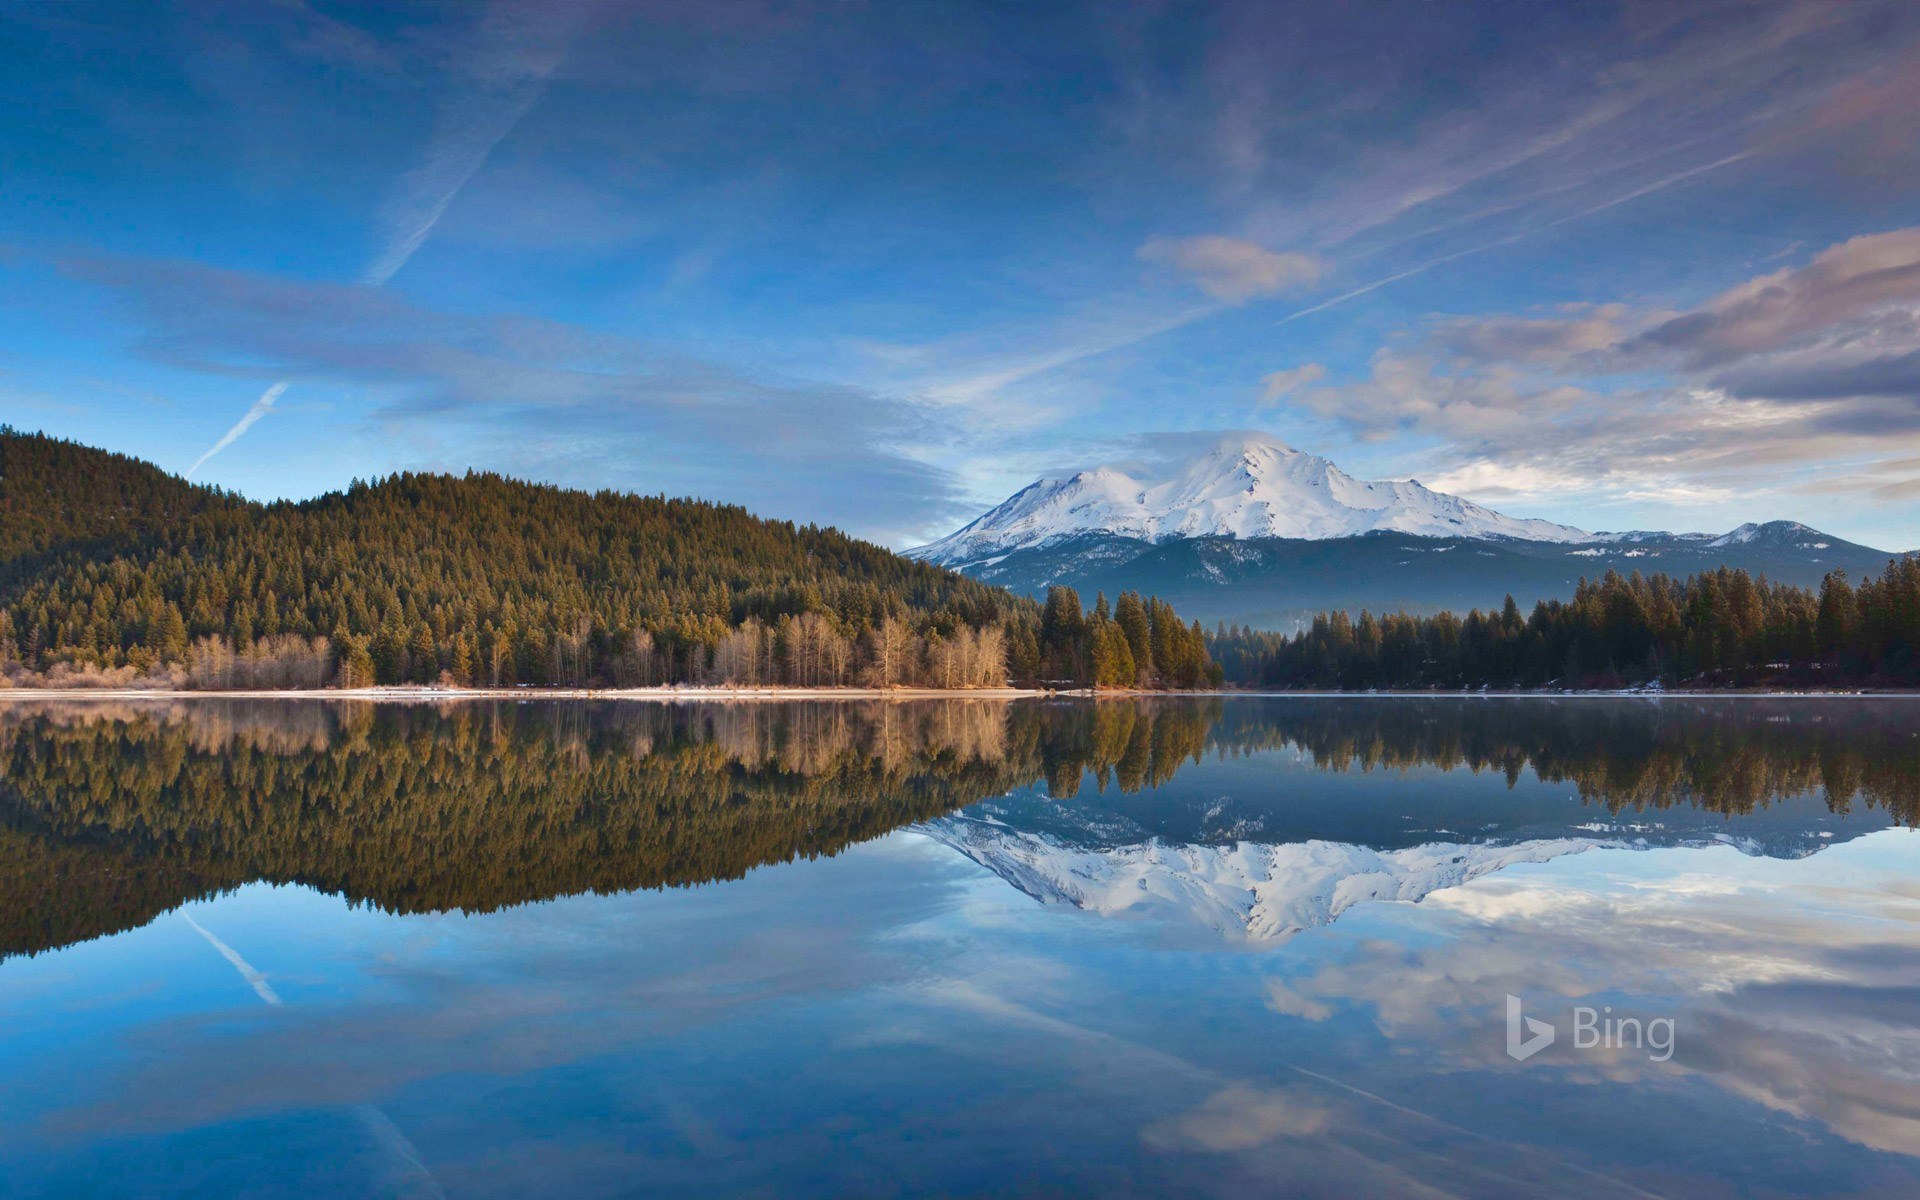 Lake Siskiyou reflects snowy Mount Shasta in northern California